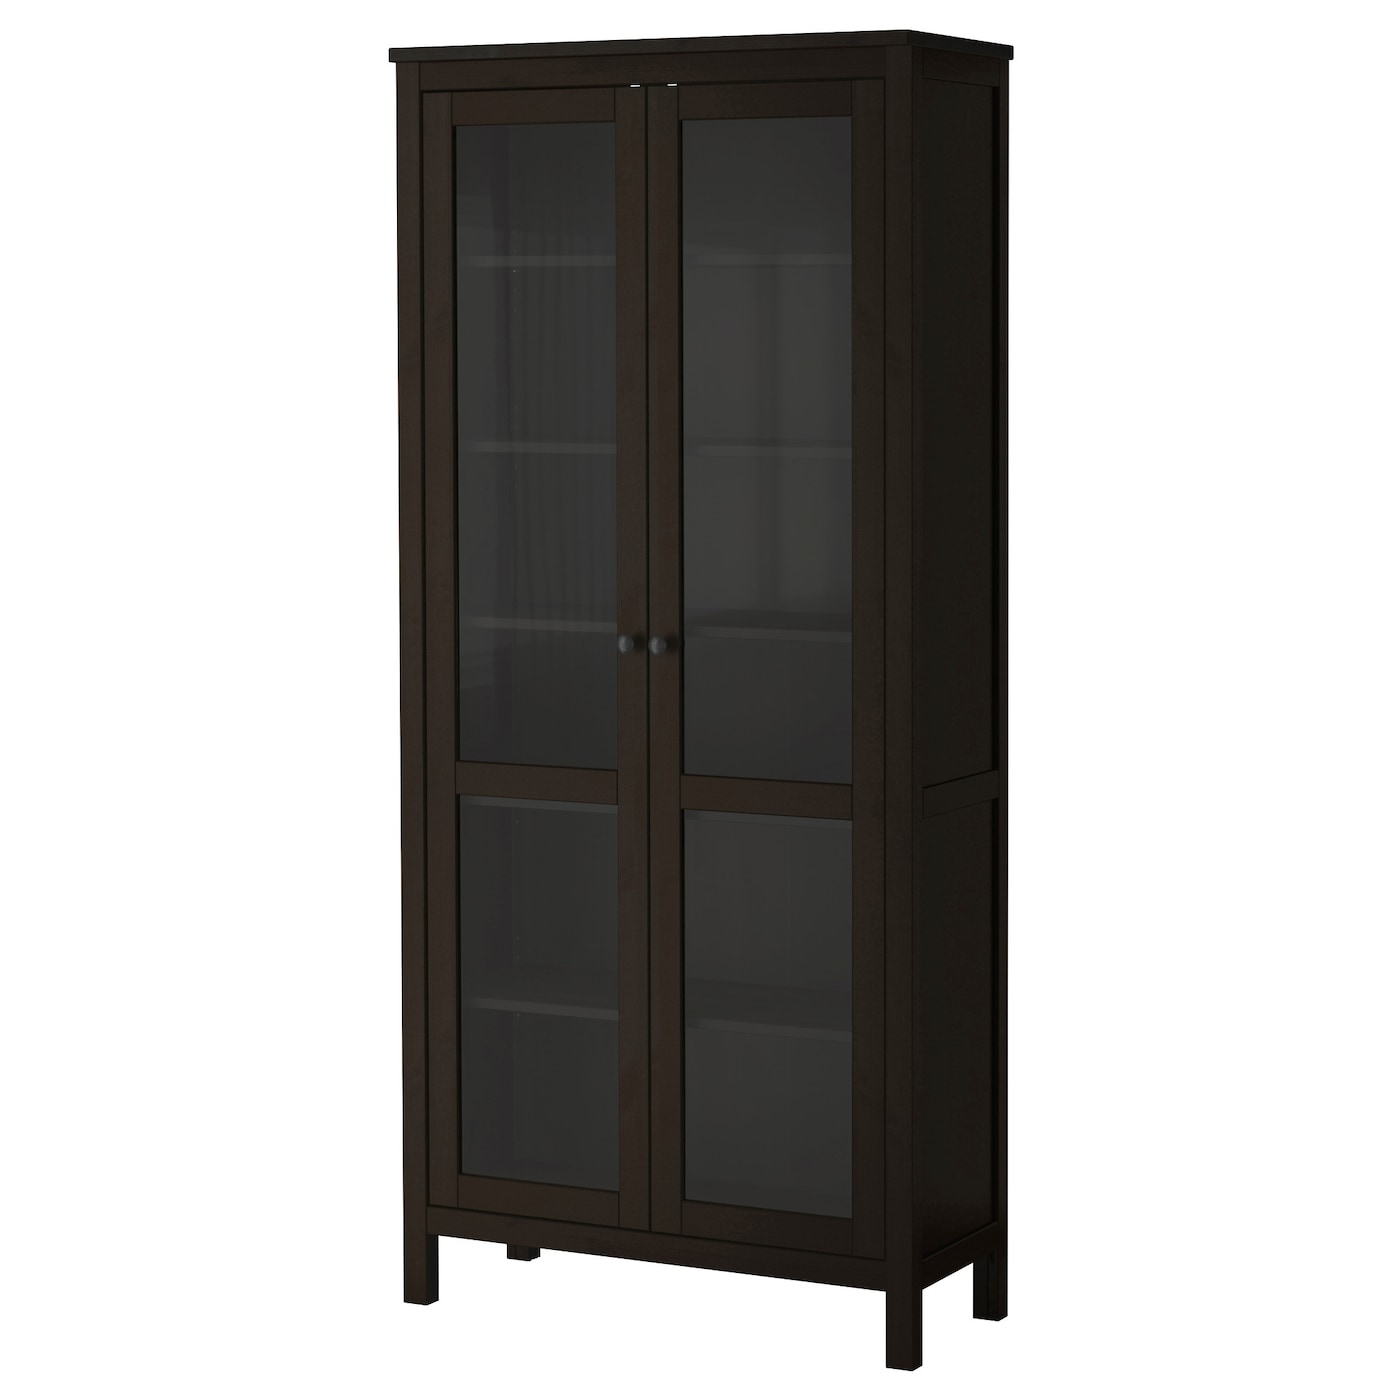 IKEA HEMNES Glass Door Cabinet Solid Wood Has A Natural Feel. 1 Fixed Shelf